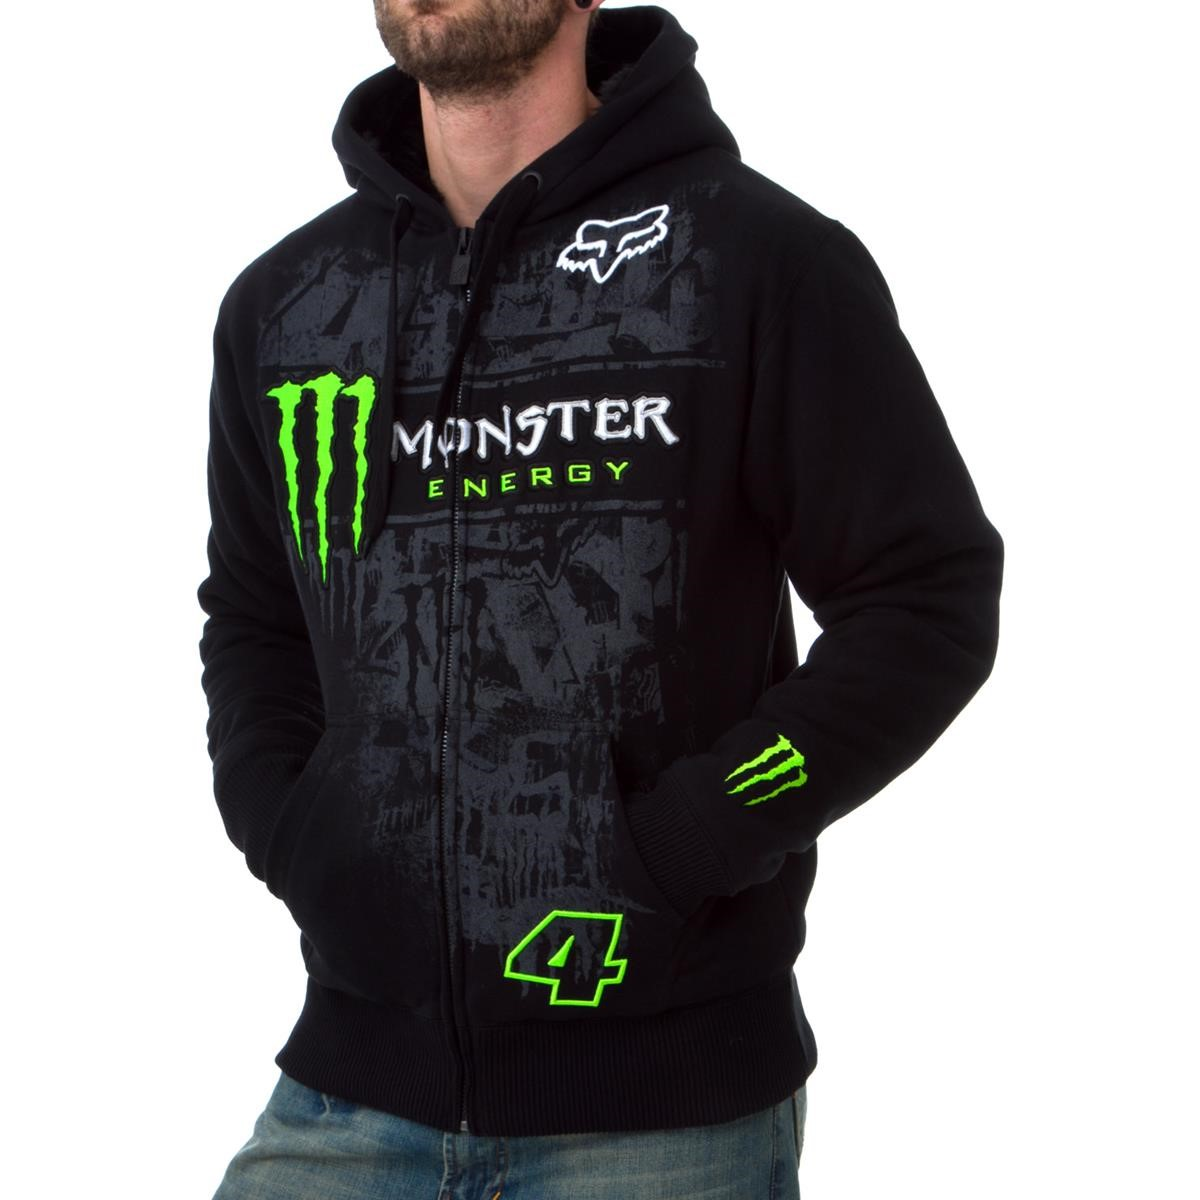 Monster Energy Dc Shoes For Sale